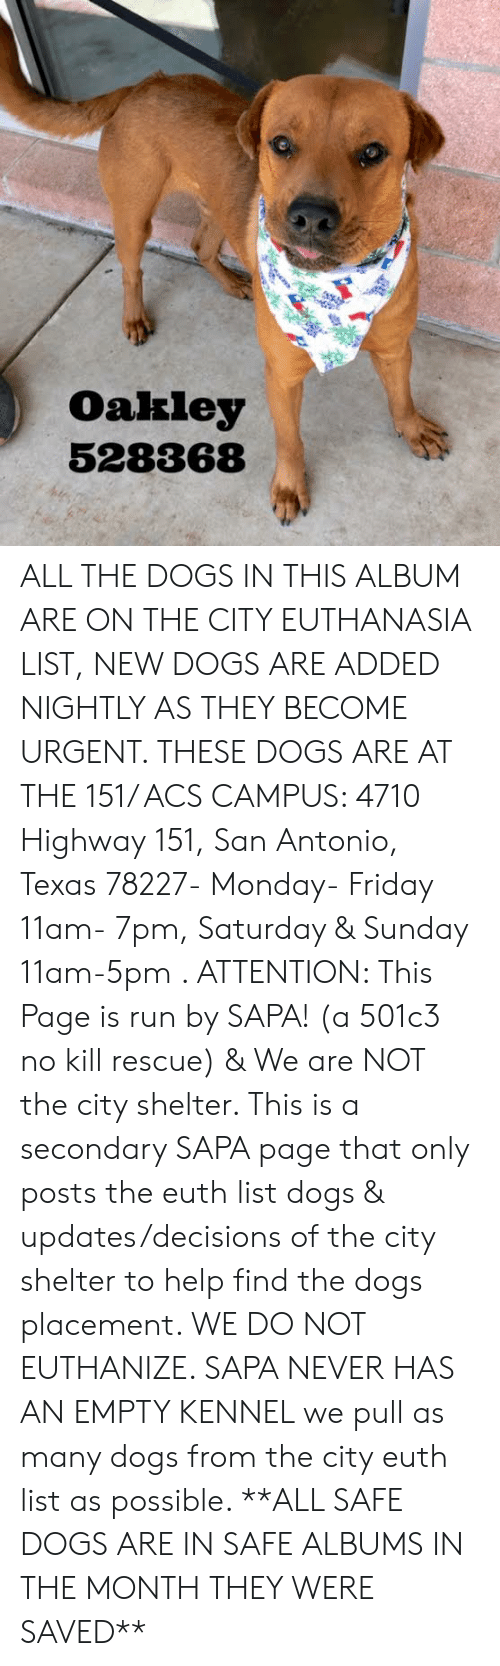 Dogs, Friday, and Memes: Oakley  528368 ALL THE DOGS IN THIS ALBUM ARE ON THE CITY EUTHANASIA LIST, NEW DOGS ARE ADDED NIGHTLY AS THEY BECOME URGENT.  THESE DOGS ARE AT THE 151/ ACS CAMPUS: 4710 Highway 151, San Antonio, Texas 78227- Monday- Friday 11am- 7pm, Saturday & Sunday 11am-5pm  .                                                                                                                                                                                                                                                     ATTENTION: This Page is run by SAPA! (a 501c3 no kill rescue) & We are NOT the city shelter. This is a secondary SAPA page that only posts the euth list dogs & updates/decisions of the city shelter to help find the dogs placement. WE DO NOT EUTHANIZE.  SAPA NEVER HAS AN EMPTY KENNEL we pull as many dogs from the city euth list as possible.      **ALL SAFE DOGS ARE IN SAFE ALBUMS IN THE MONTH THEY WERE SAVED**